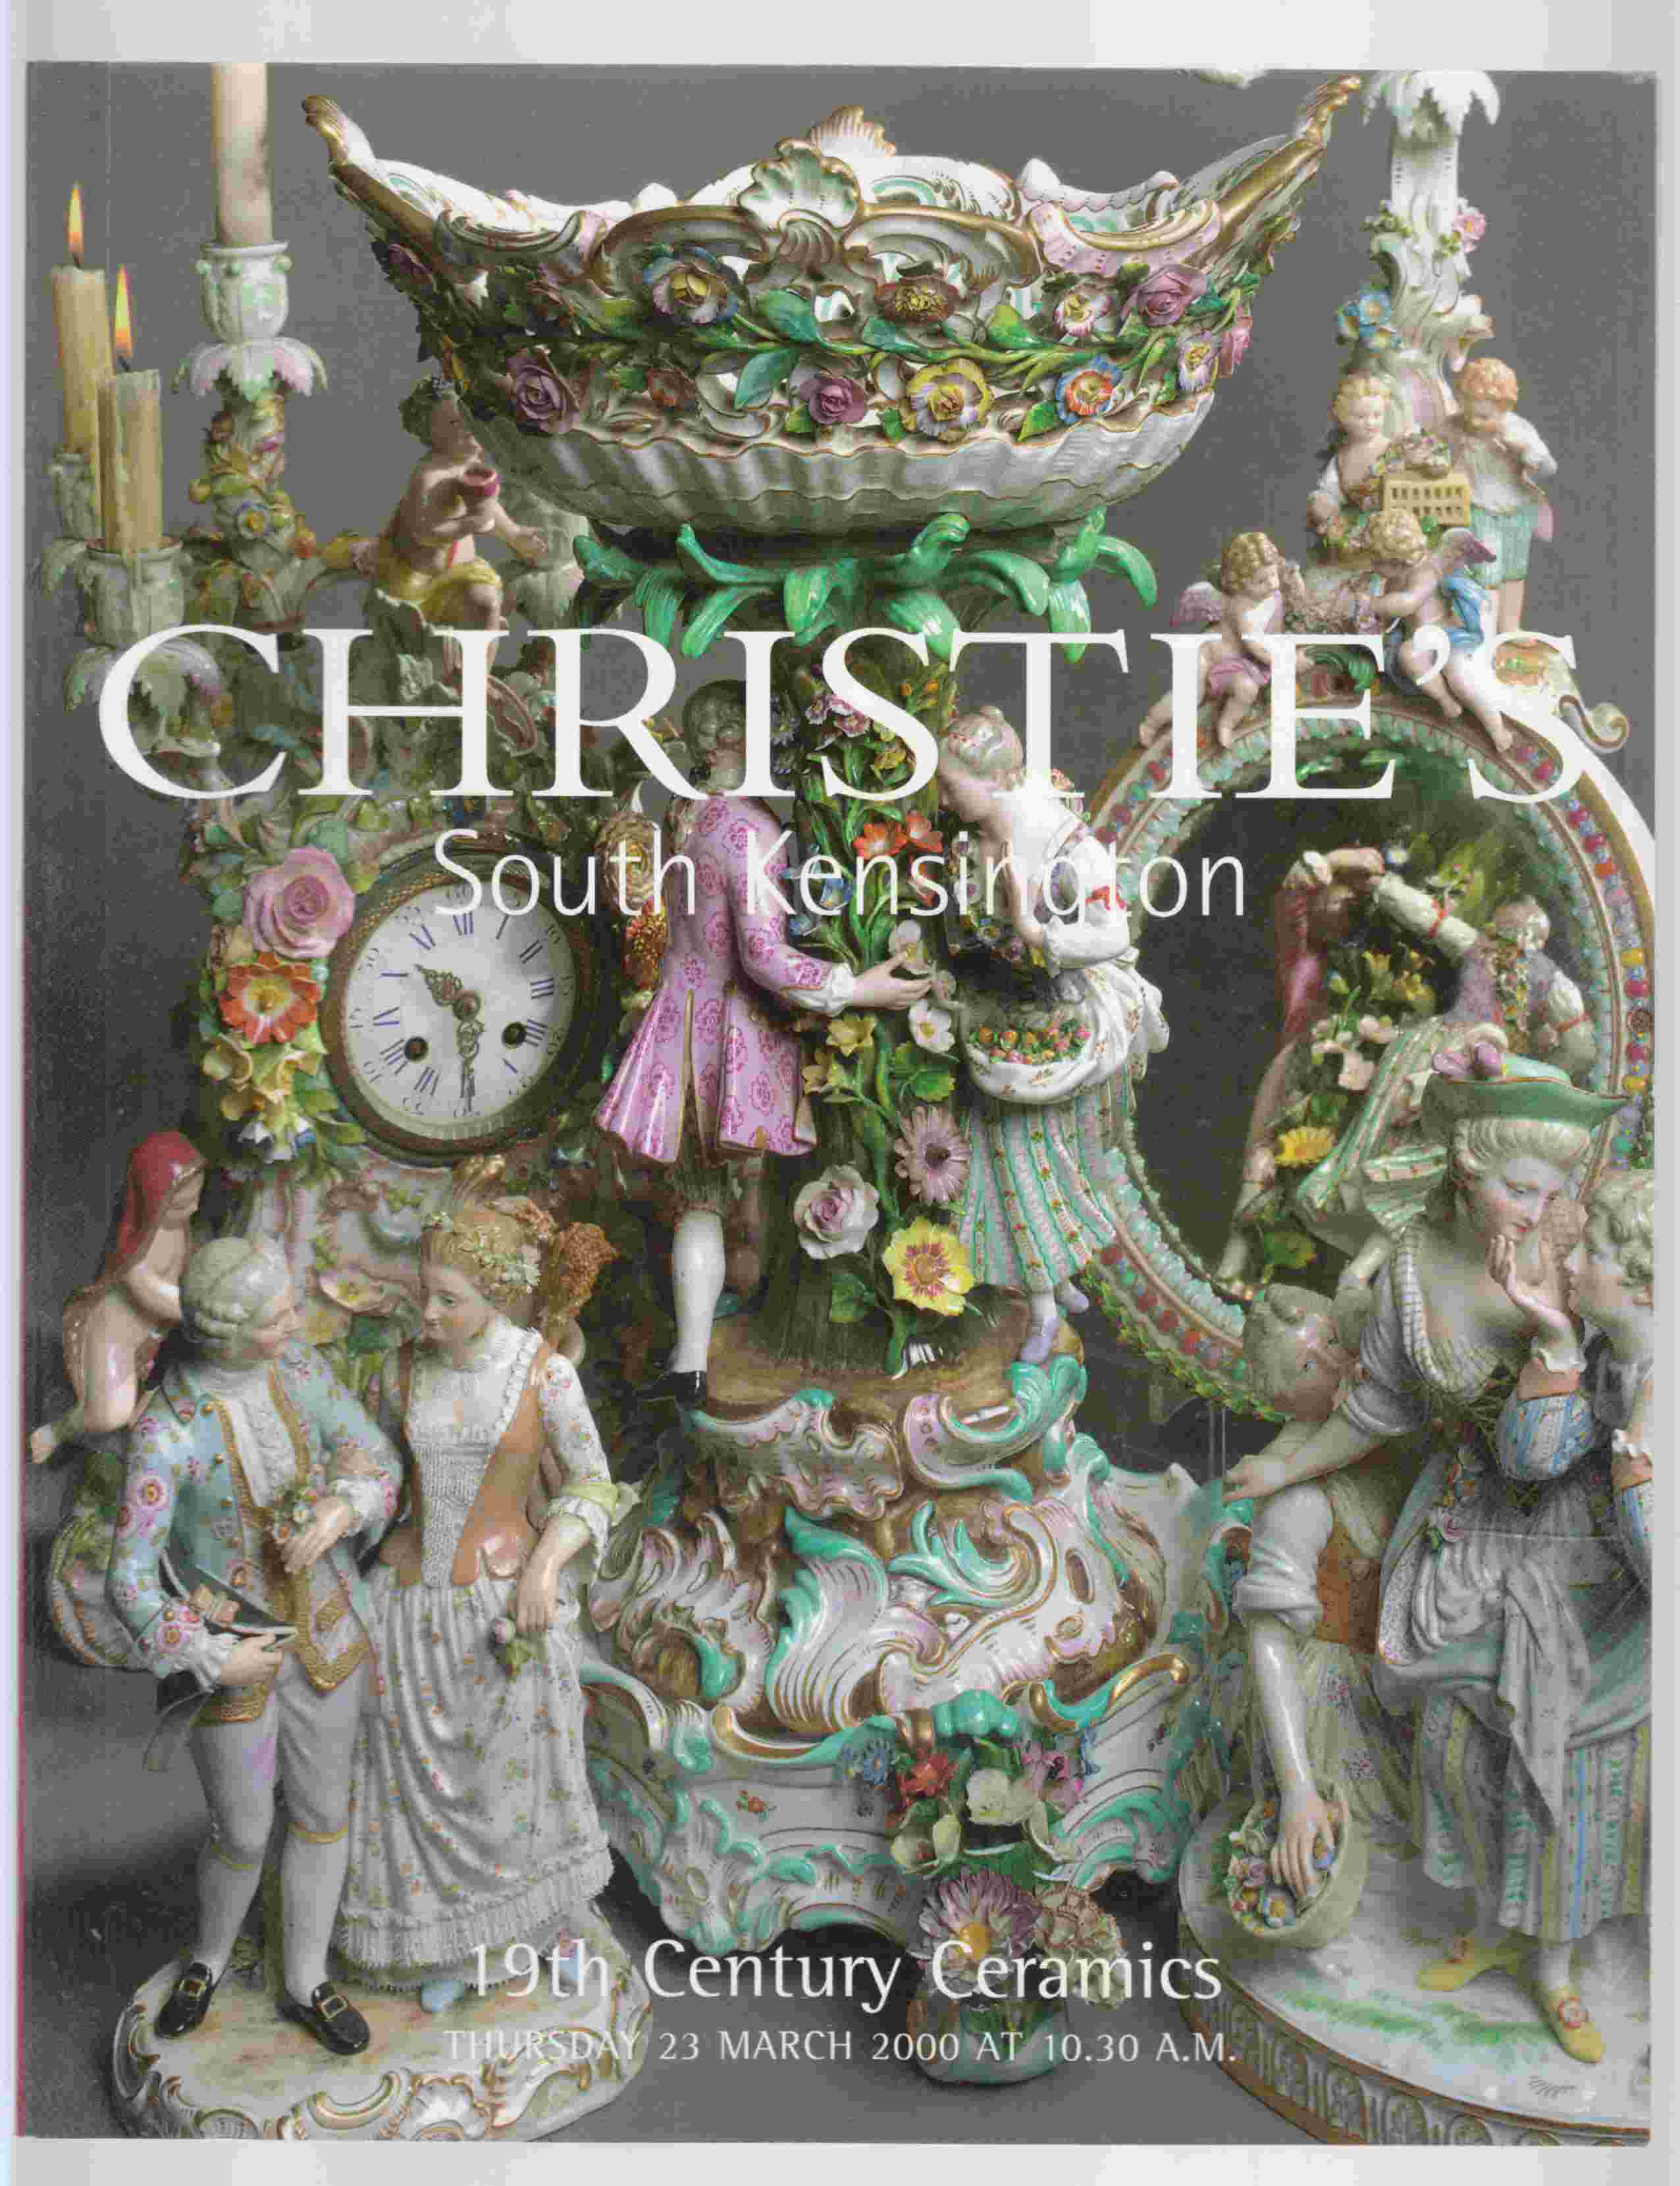 Image for Christie's South Kensington 19th Century Ceramics Thursday 23 March 2000